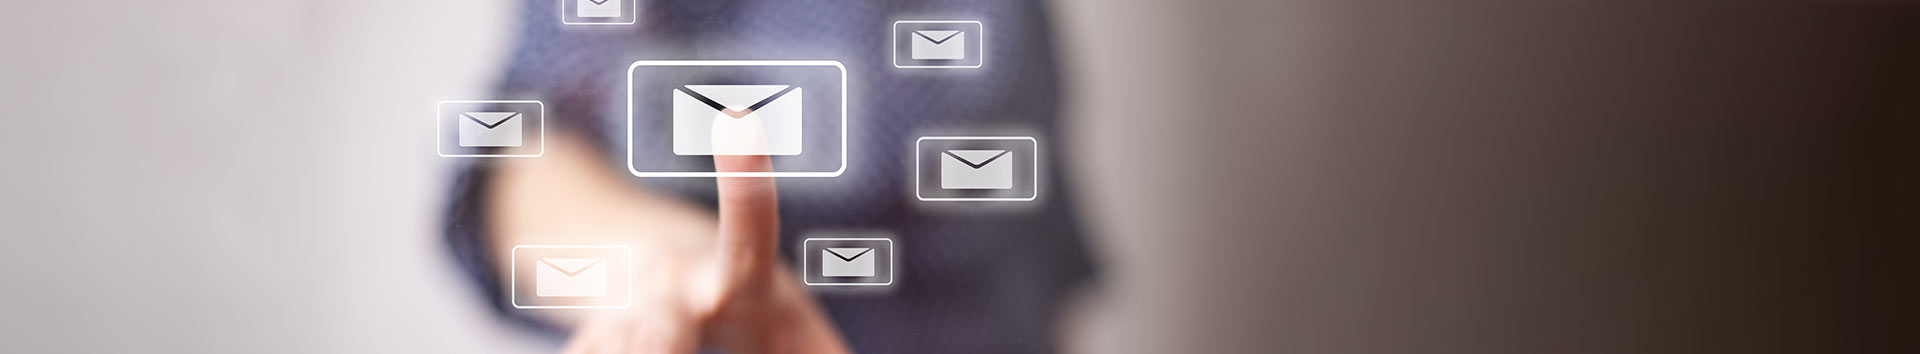 Email and Communications